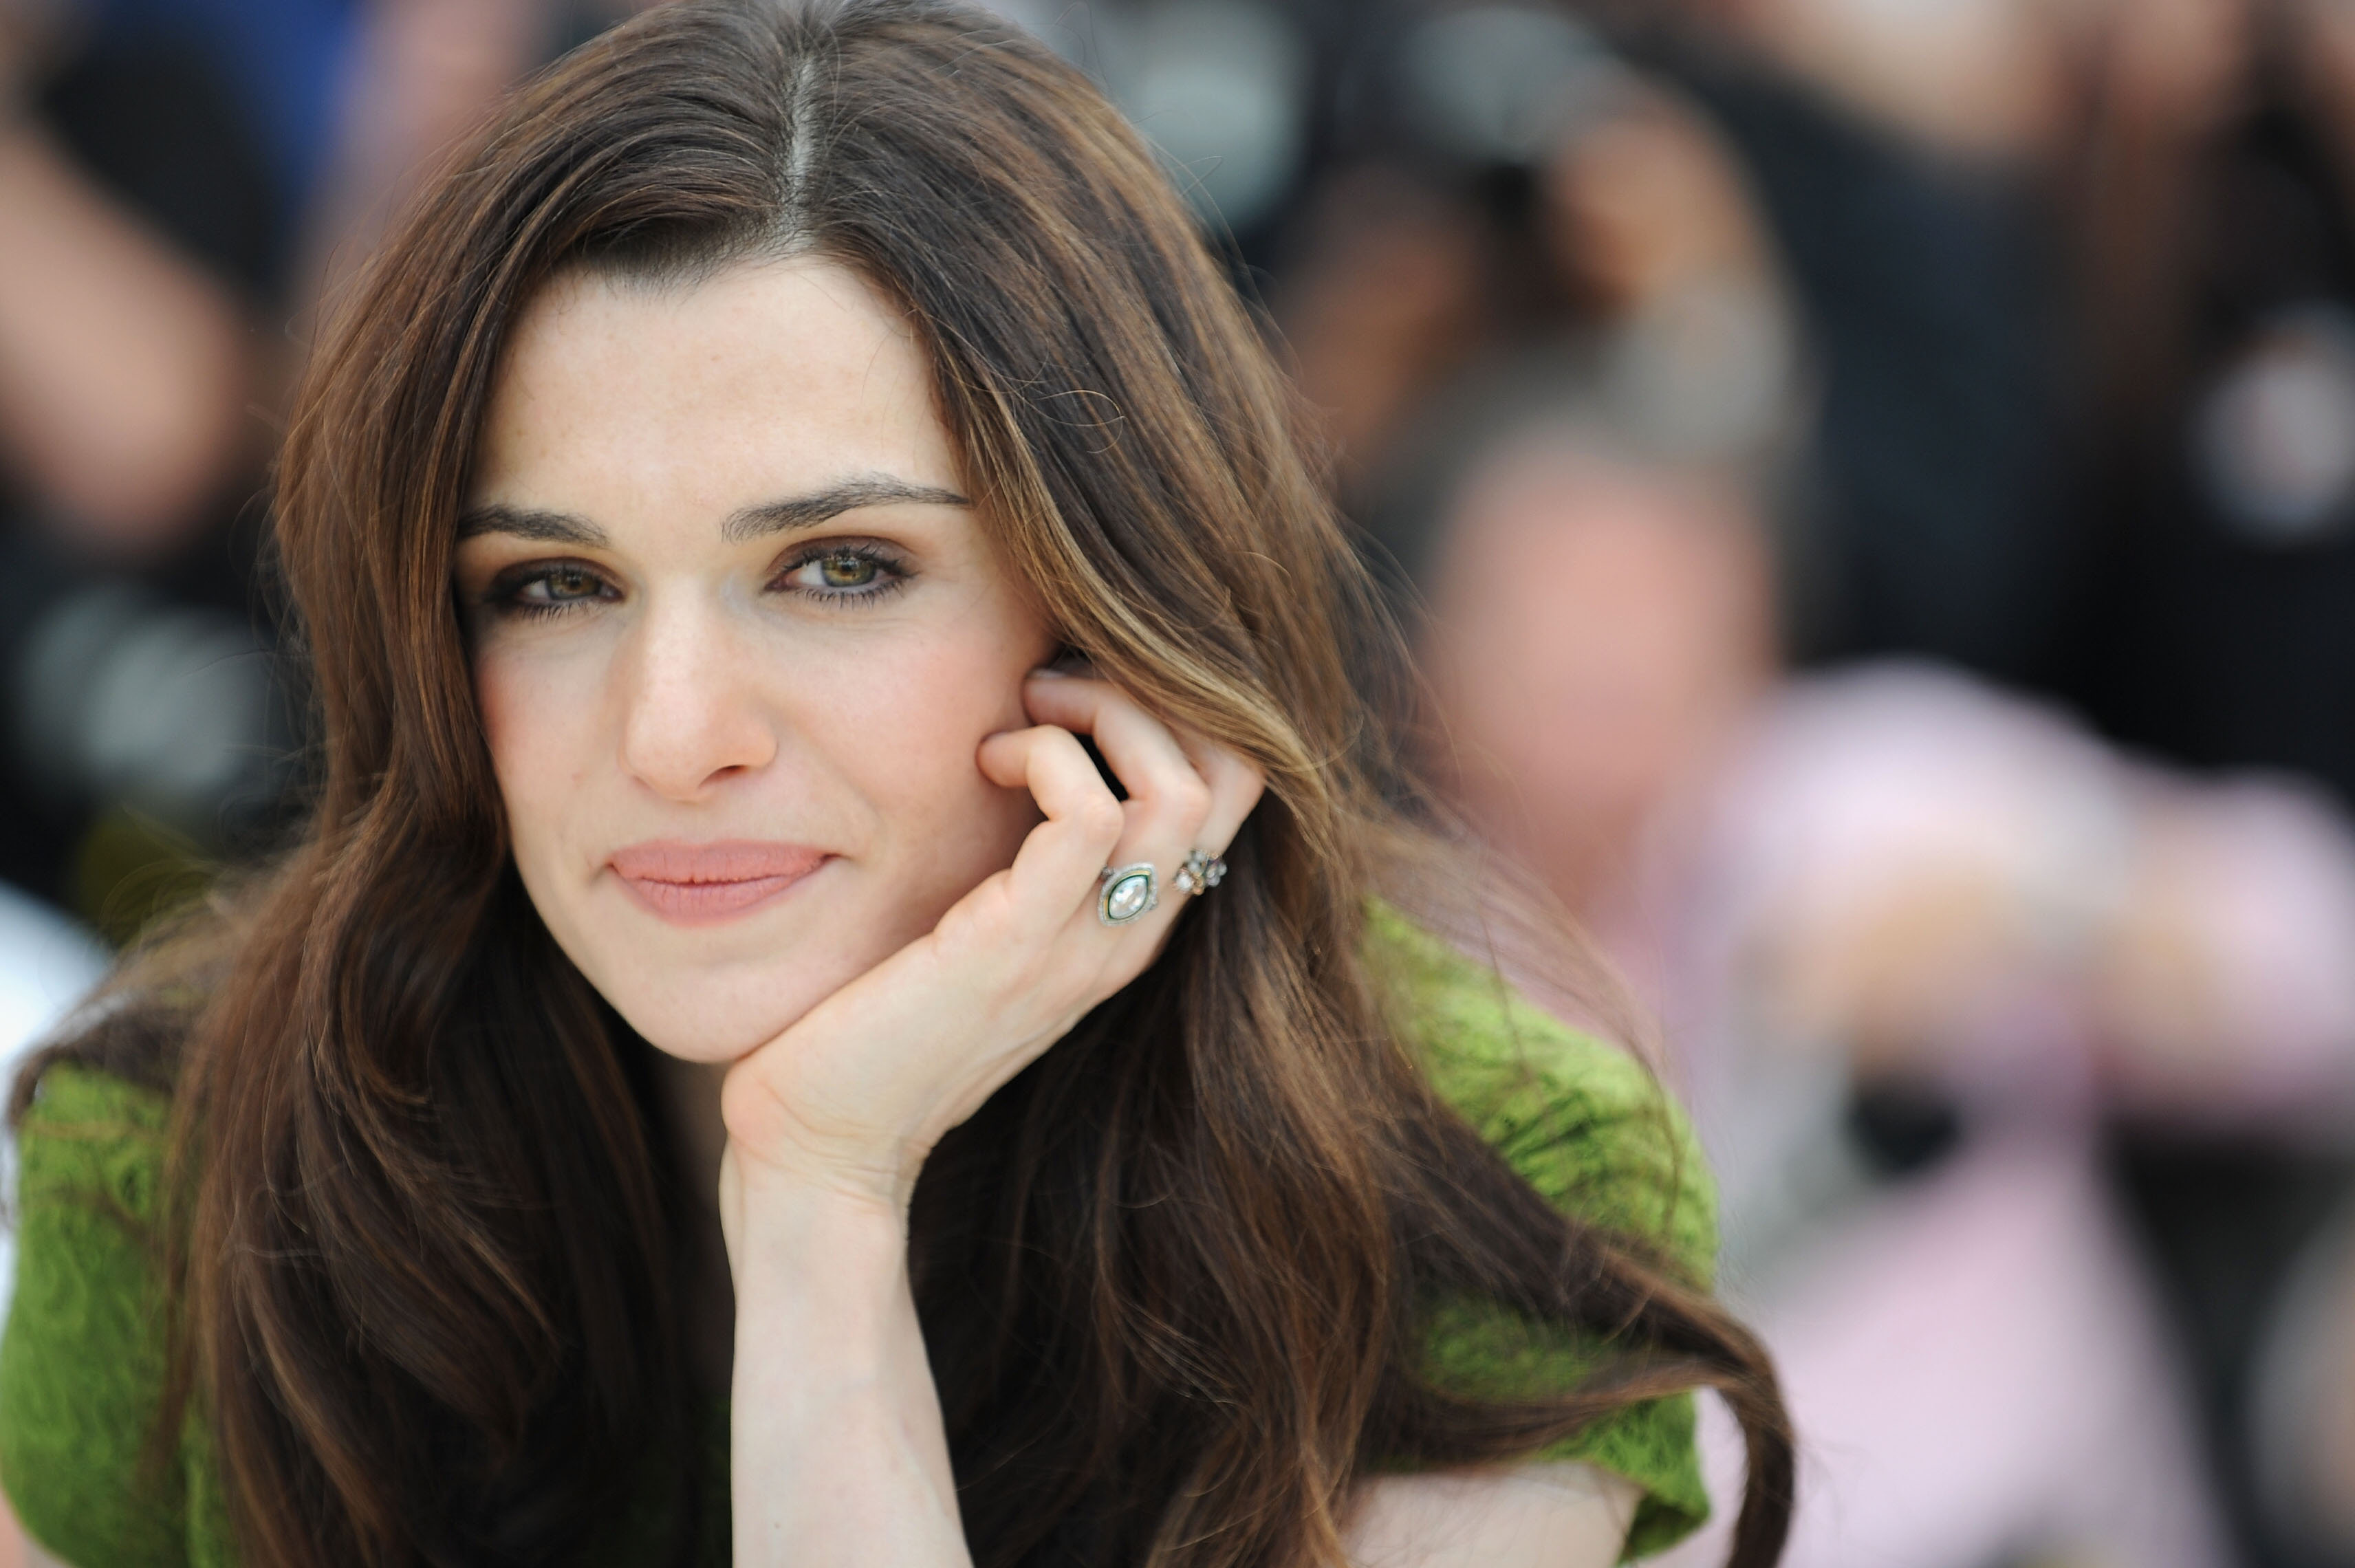 rachel weisz celebrity background wallpaper 66783